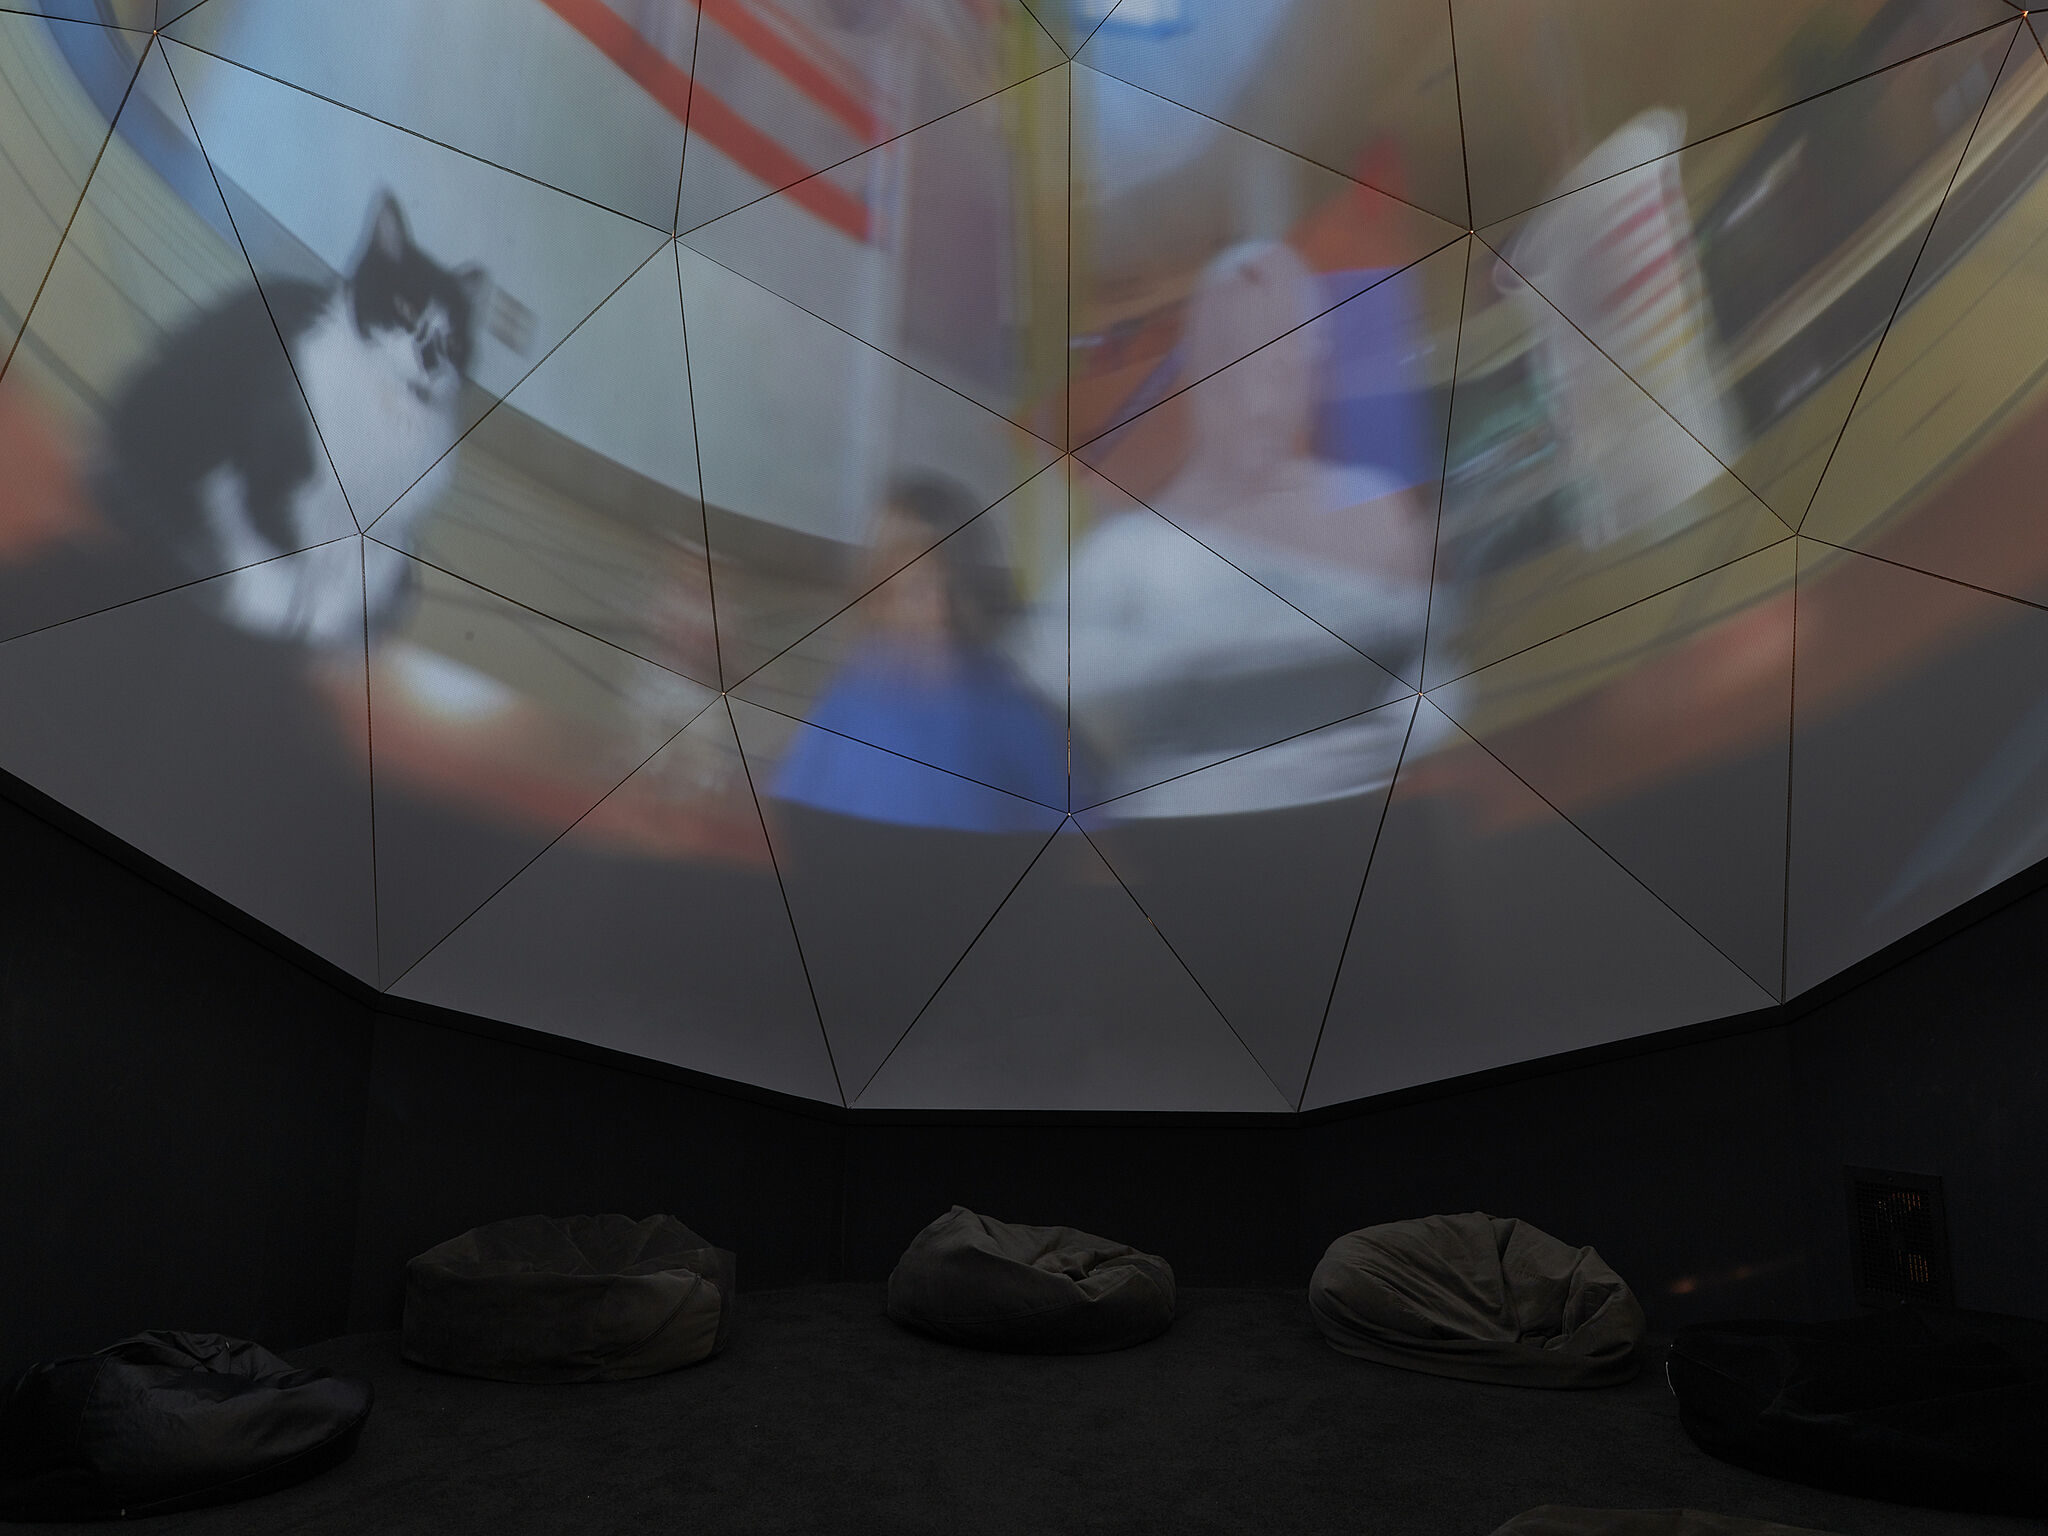 A video projection of a cat and people on a domed screen.